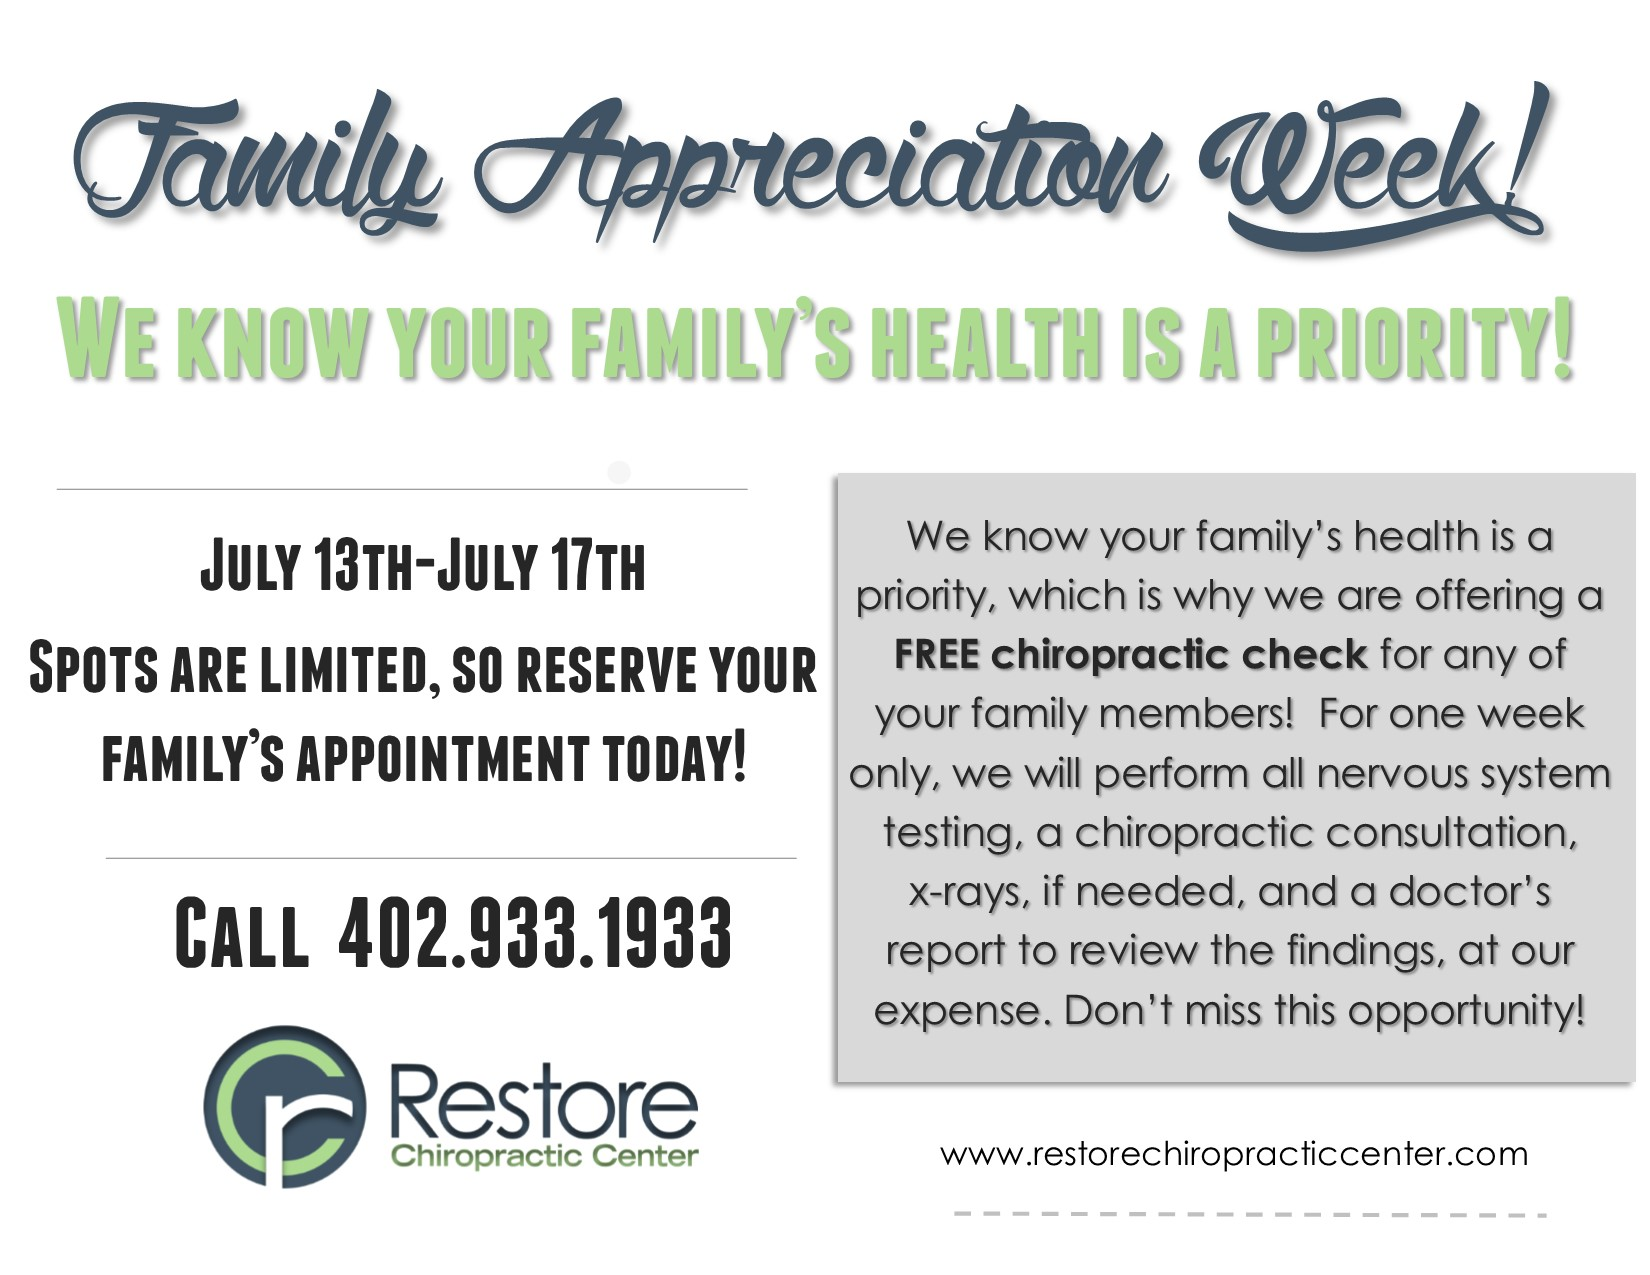 free family check week, 2015